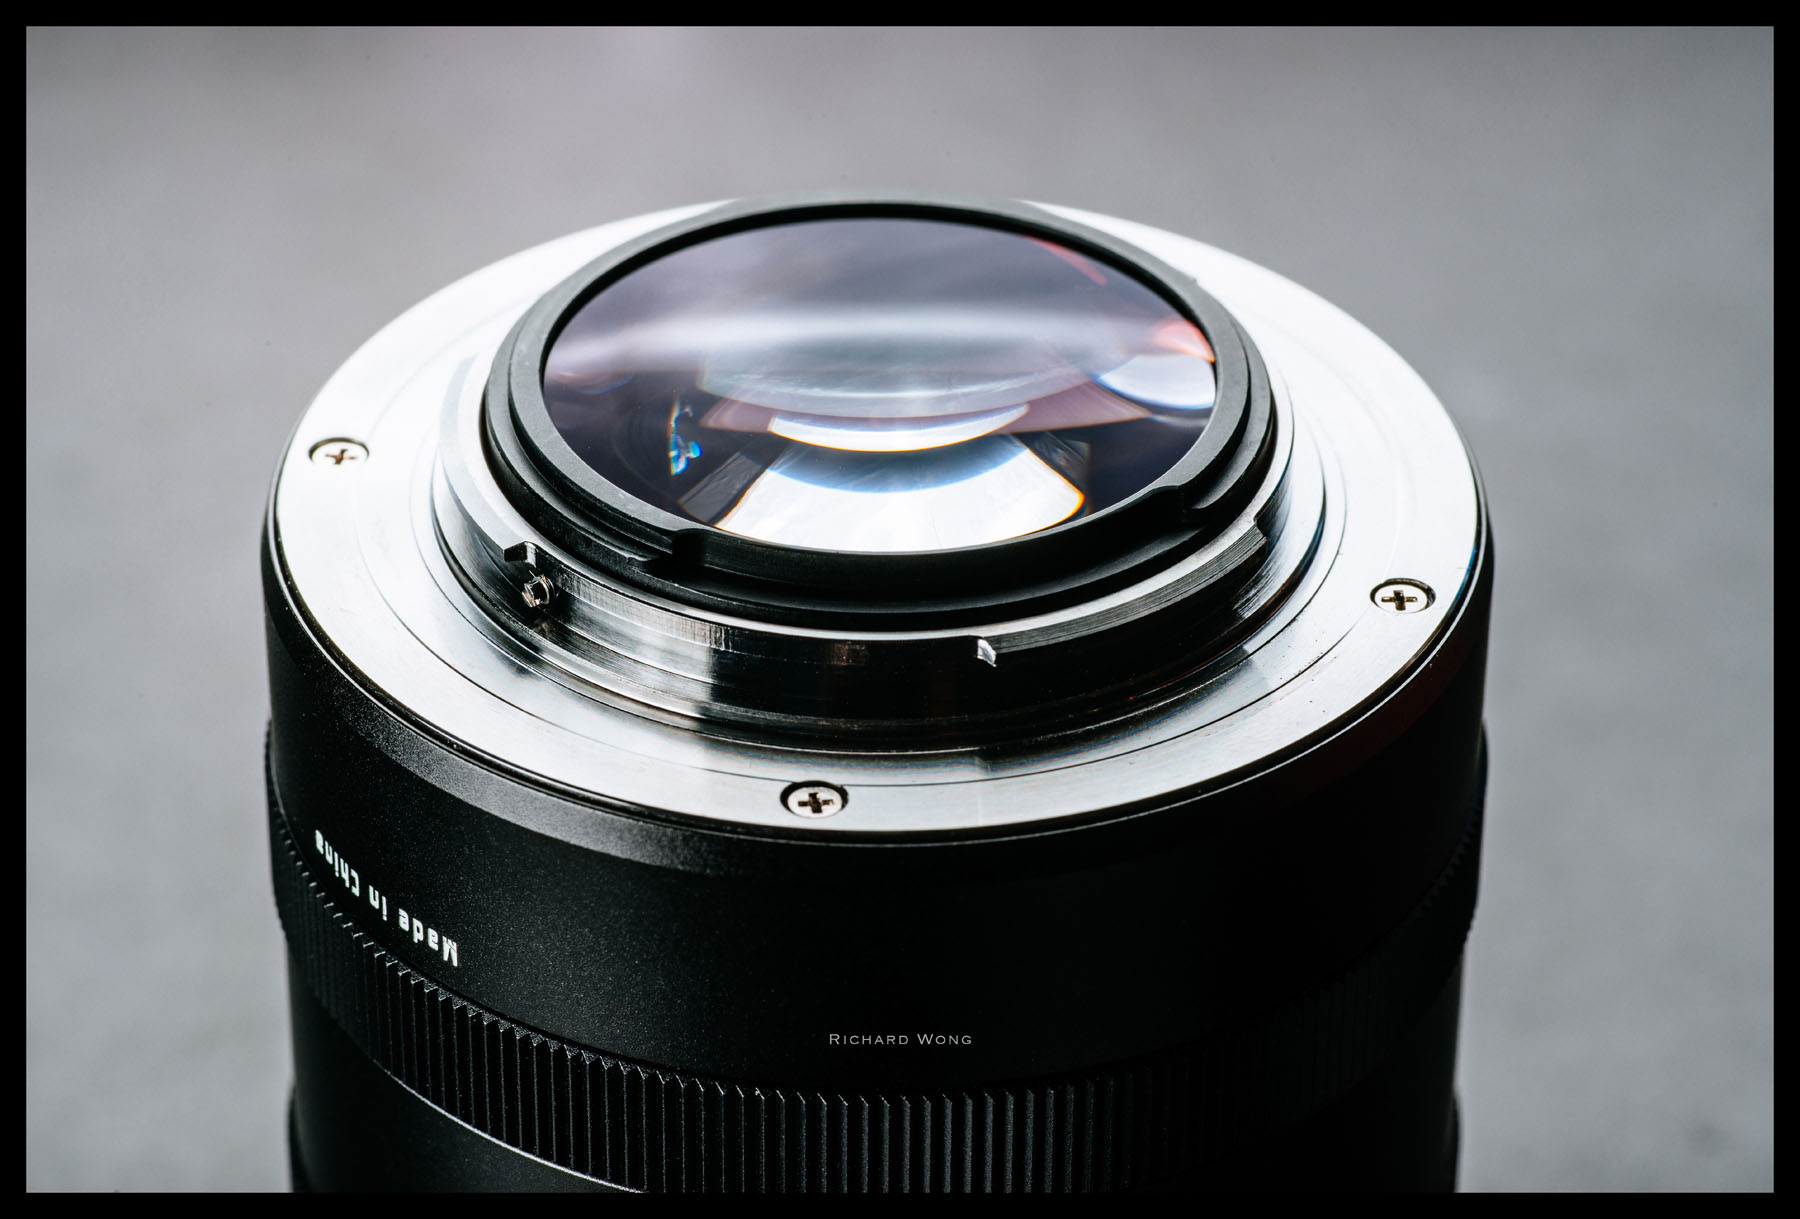 Kerlee-35mm-f1.2-review-42